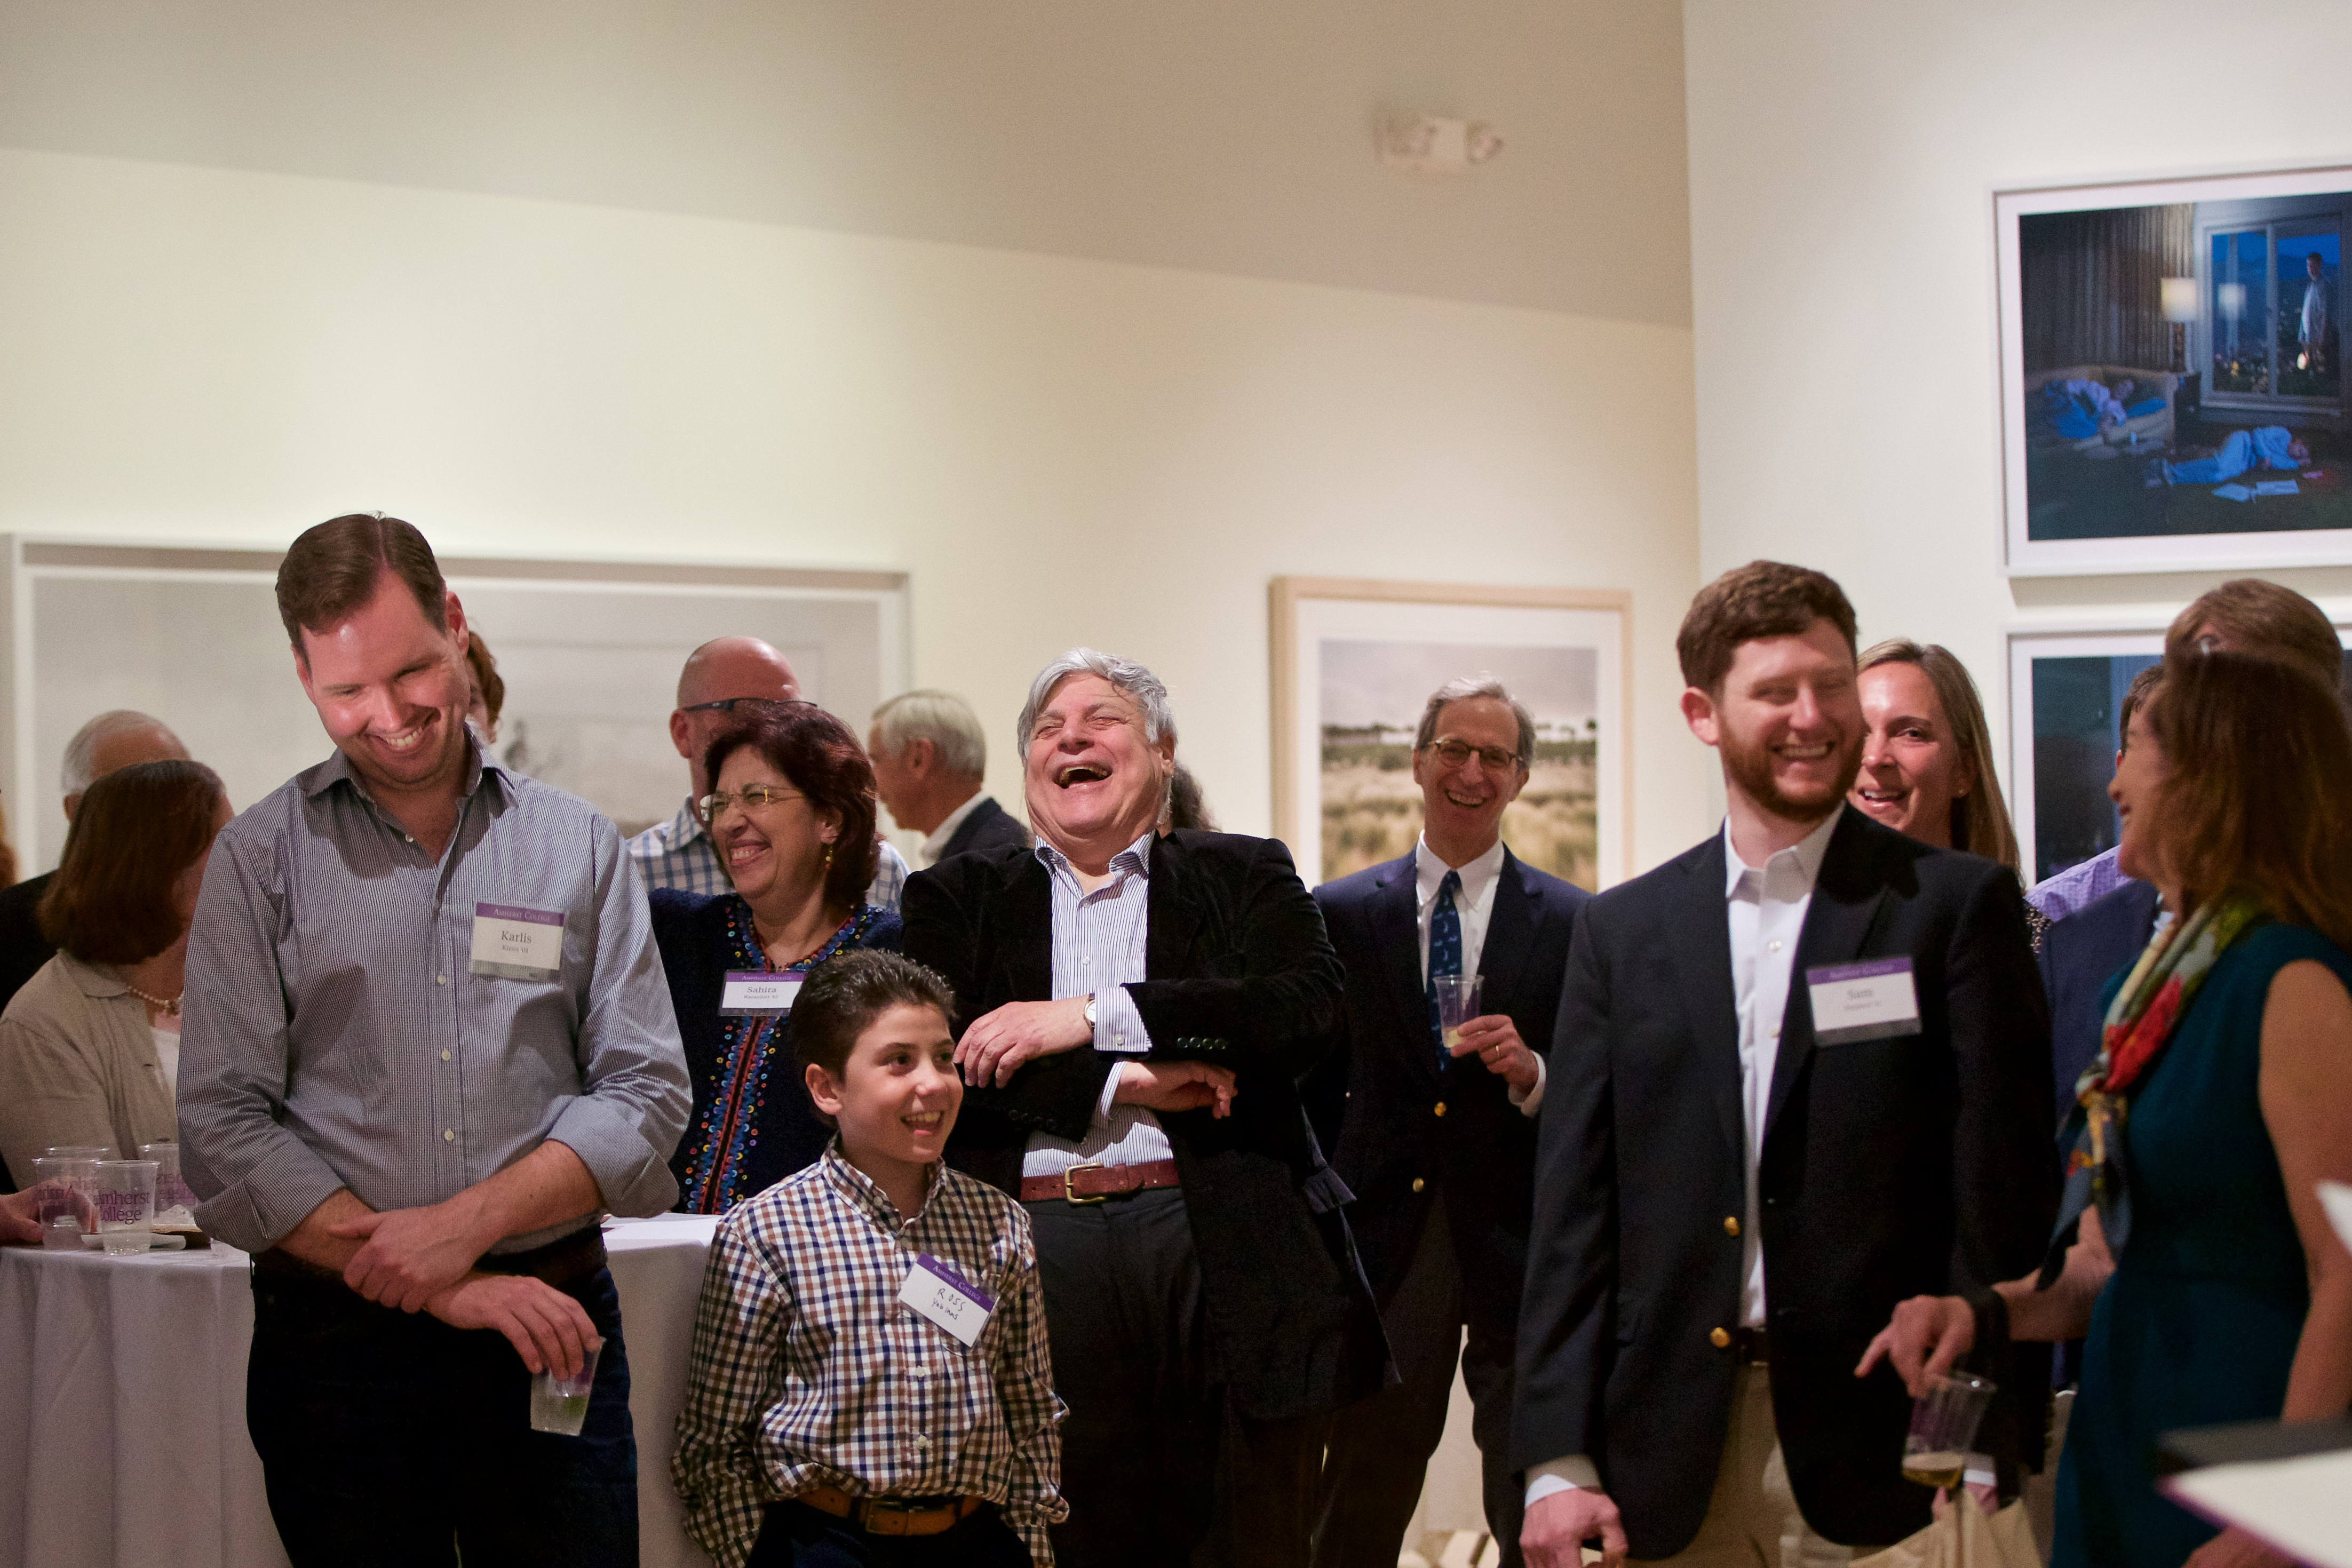 Rabinowitz and guests laughing